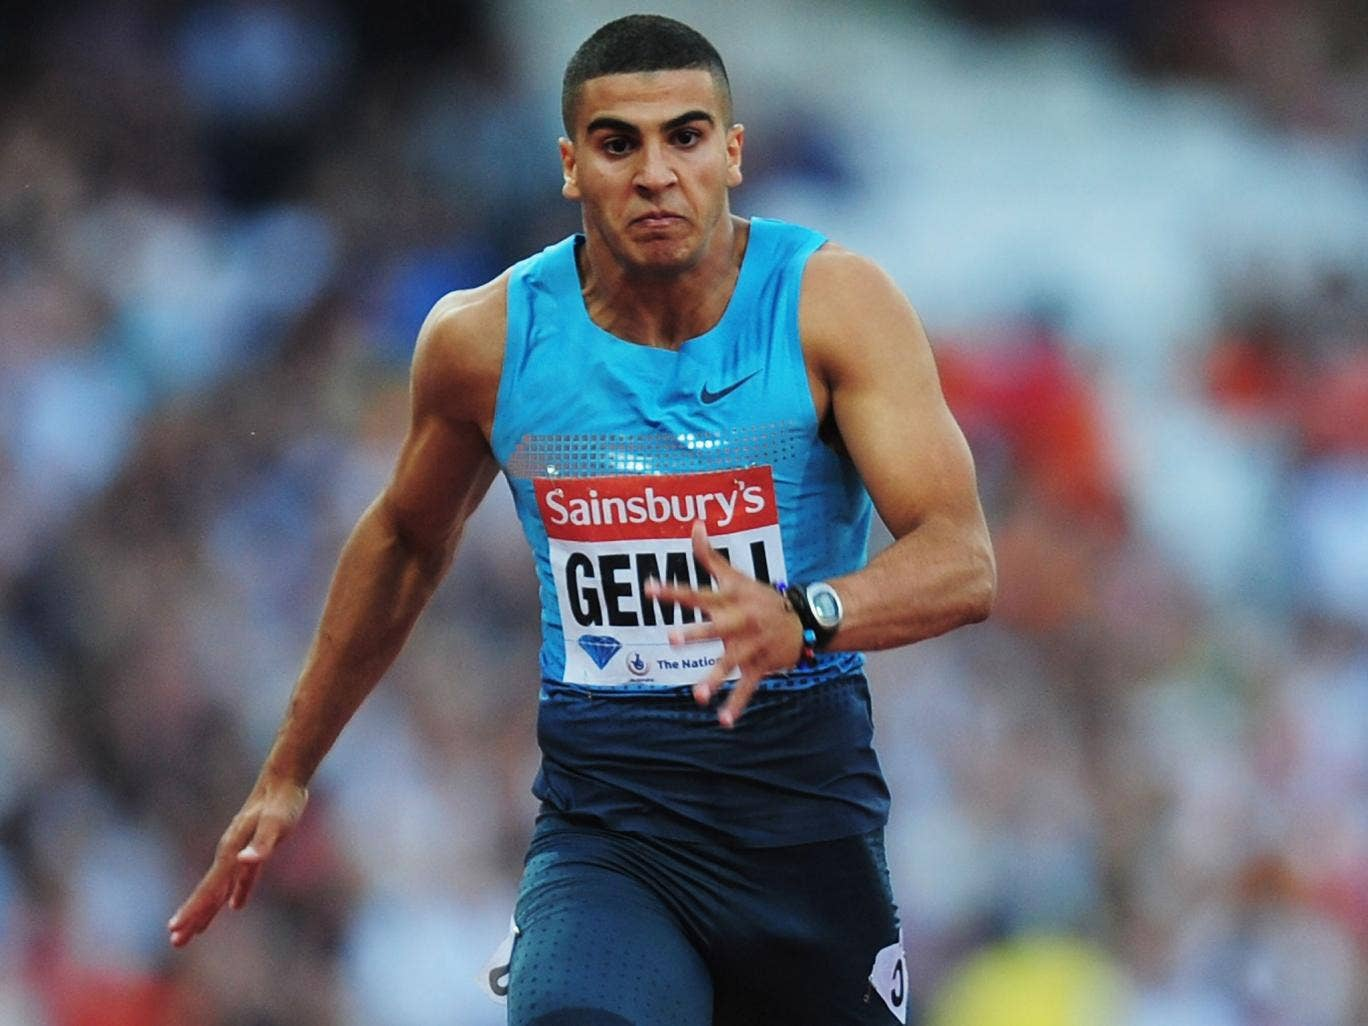 Bright young thing: Adam Gemili